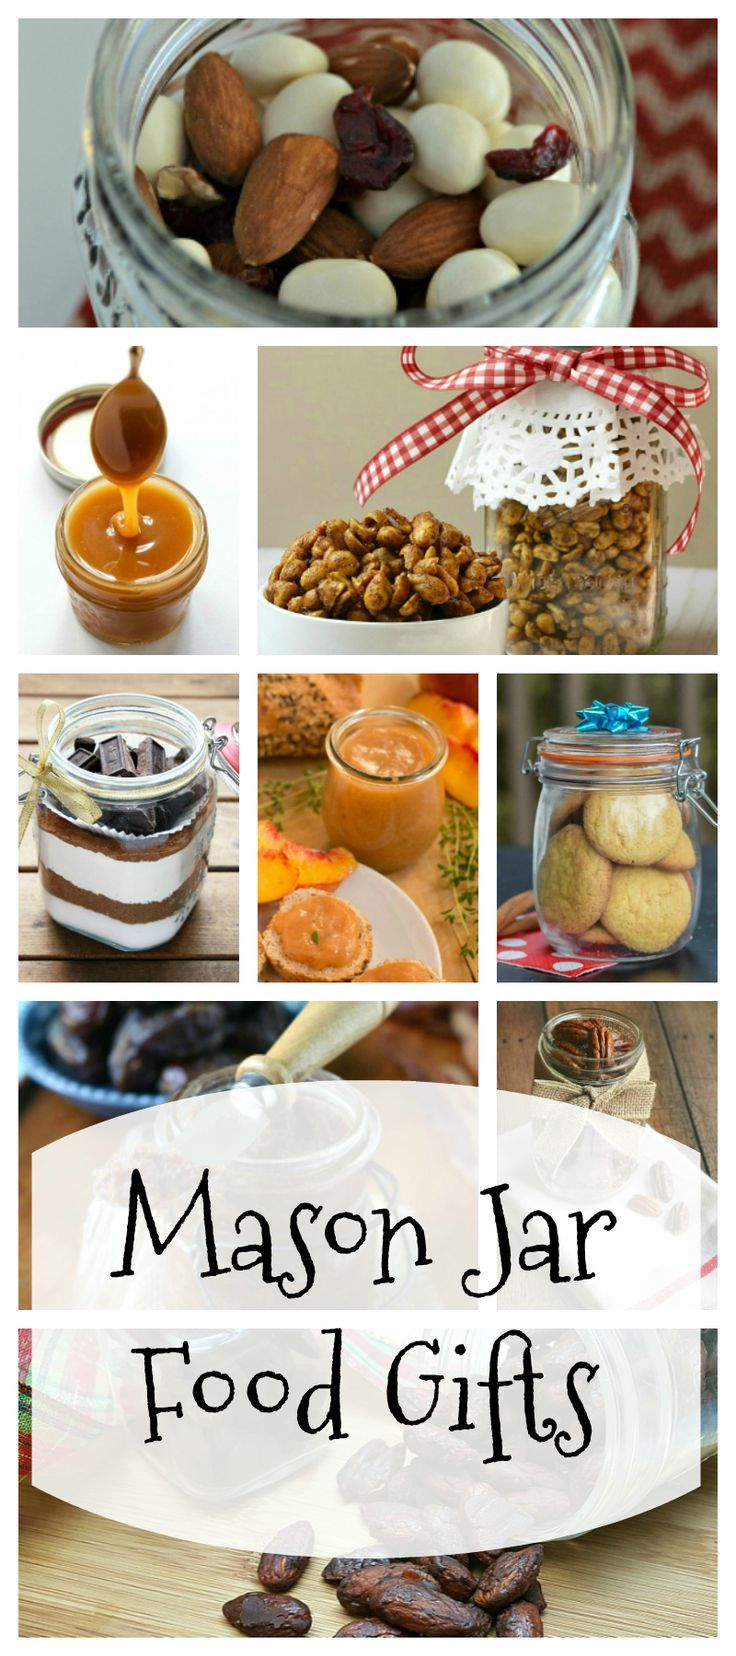 More Than 2 Dozen Mason Jar Food Gift Recipes | Pinterest | Mason ...